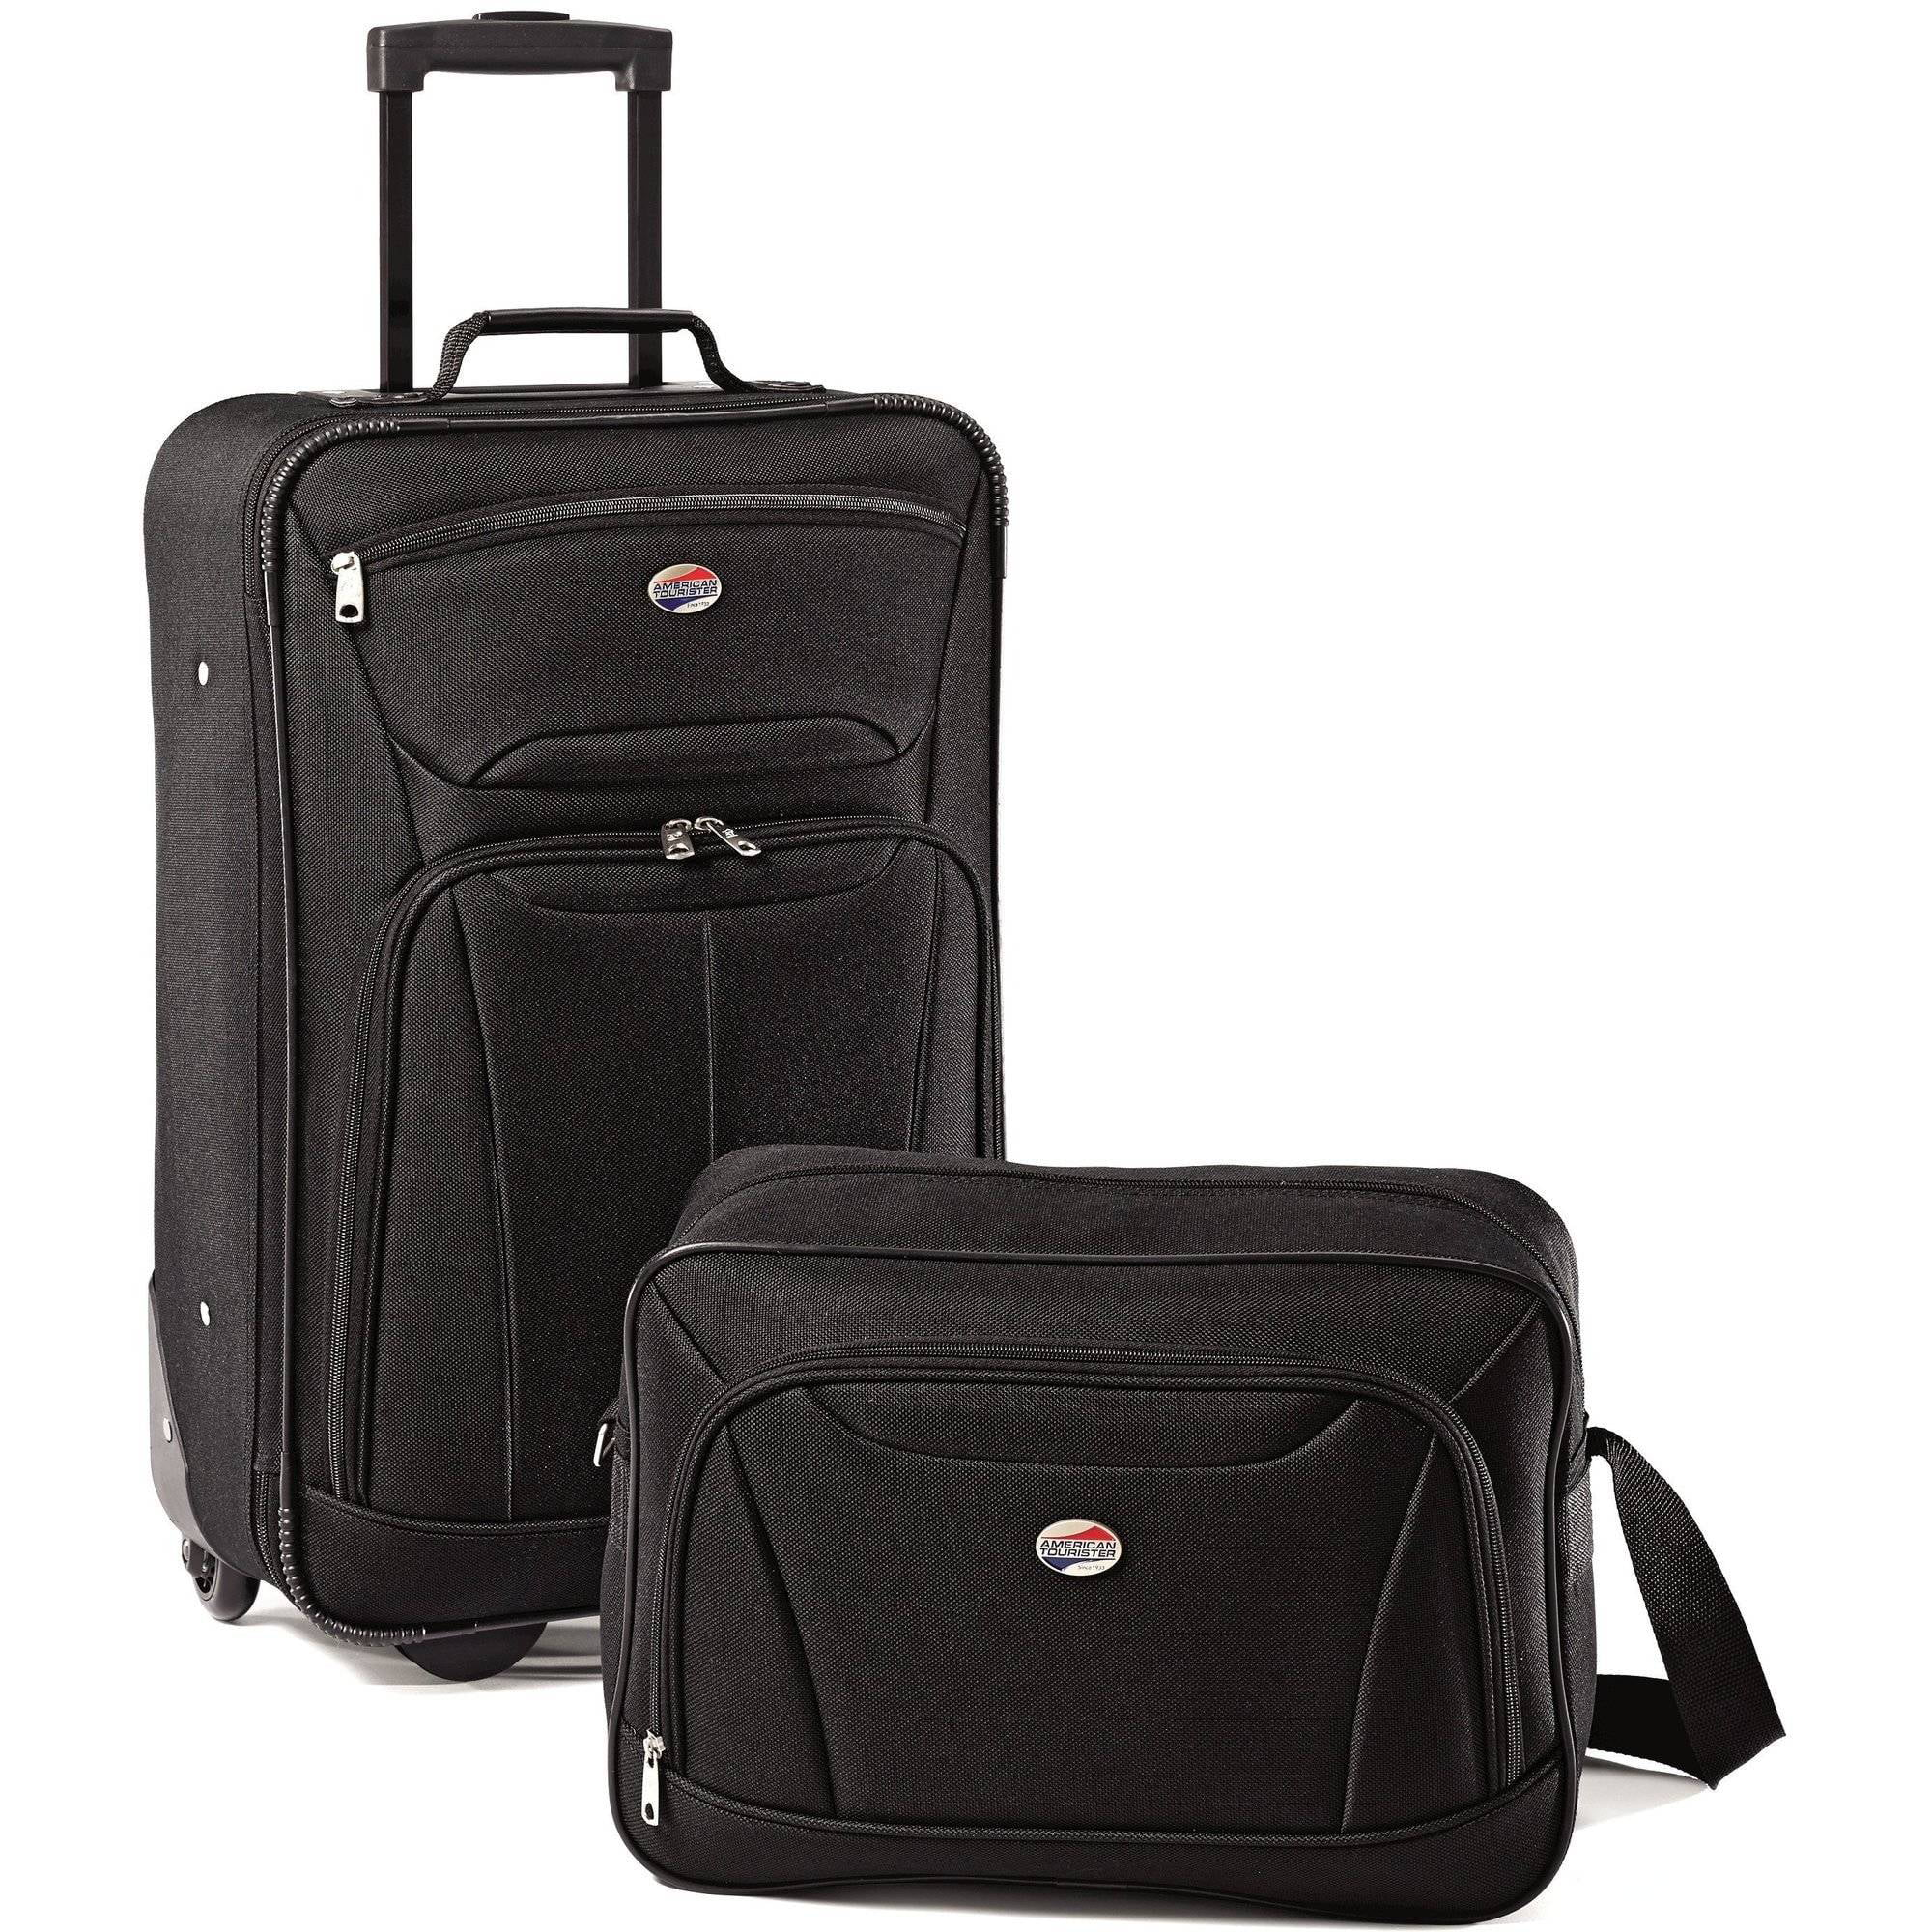 Travel Luggage Set 2-Piece Luggage Bags With Wheels 21